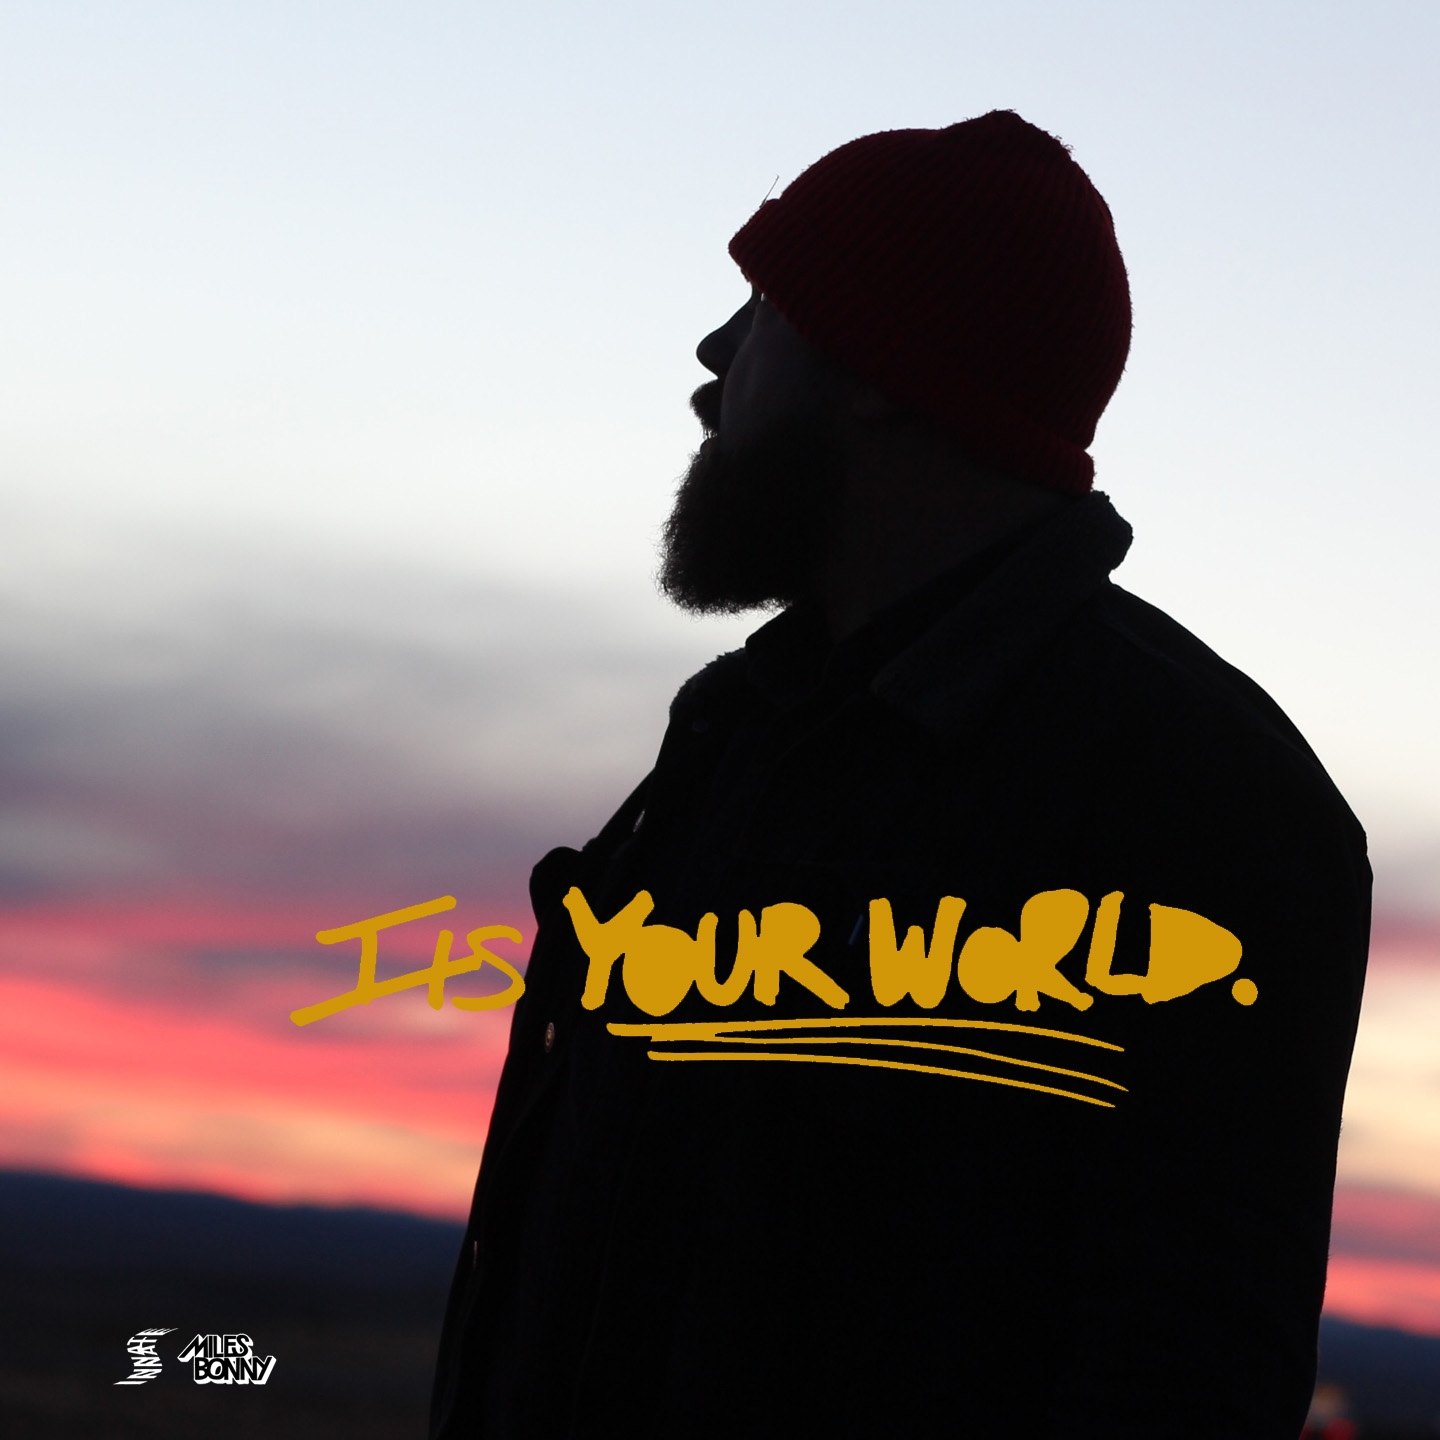 ITS YOUR WORLD COVER_MILES BONNY copy.jpg